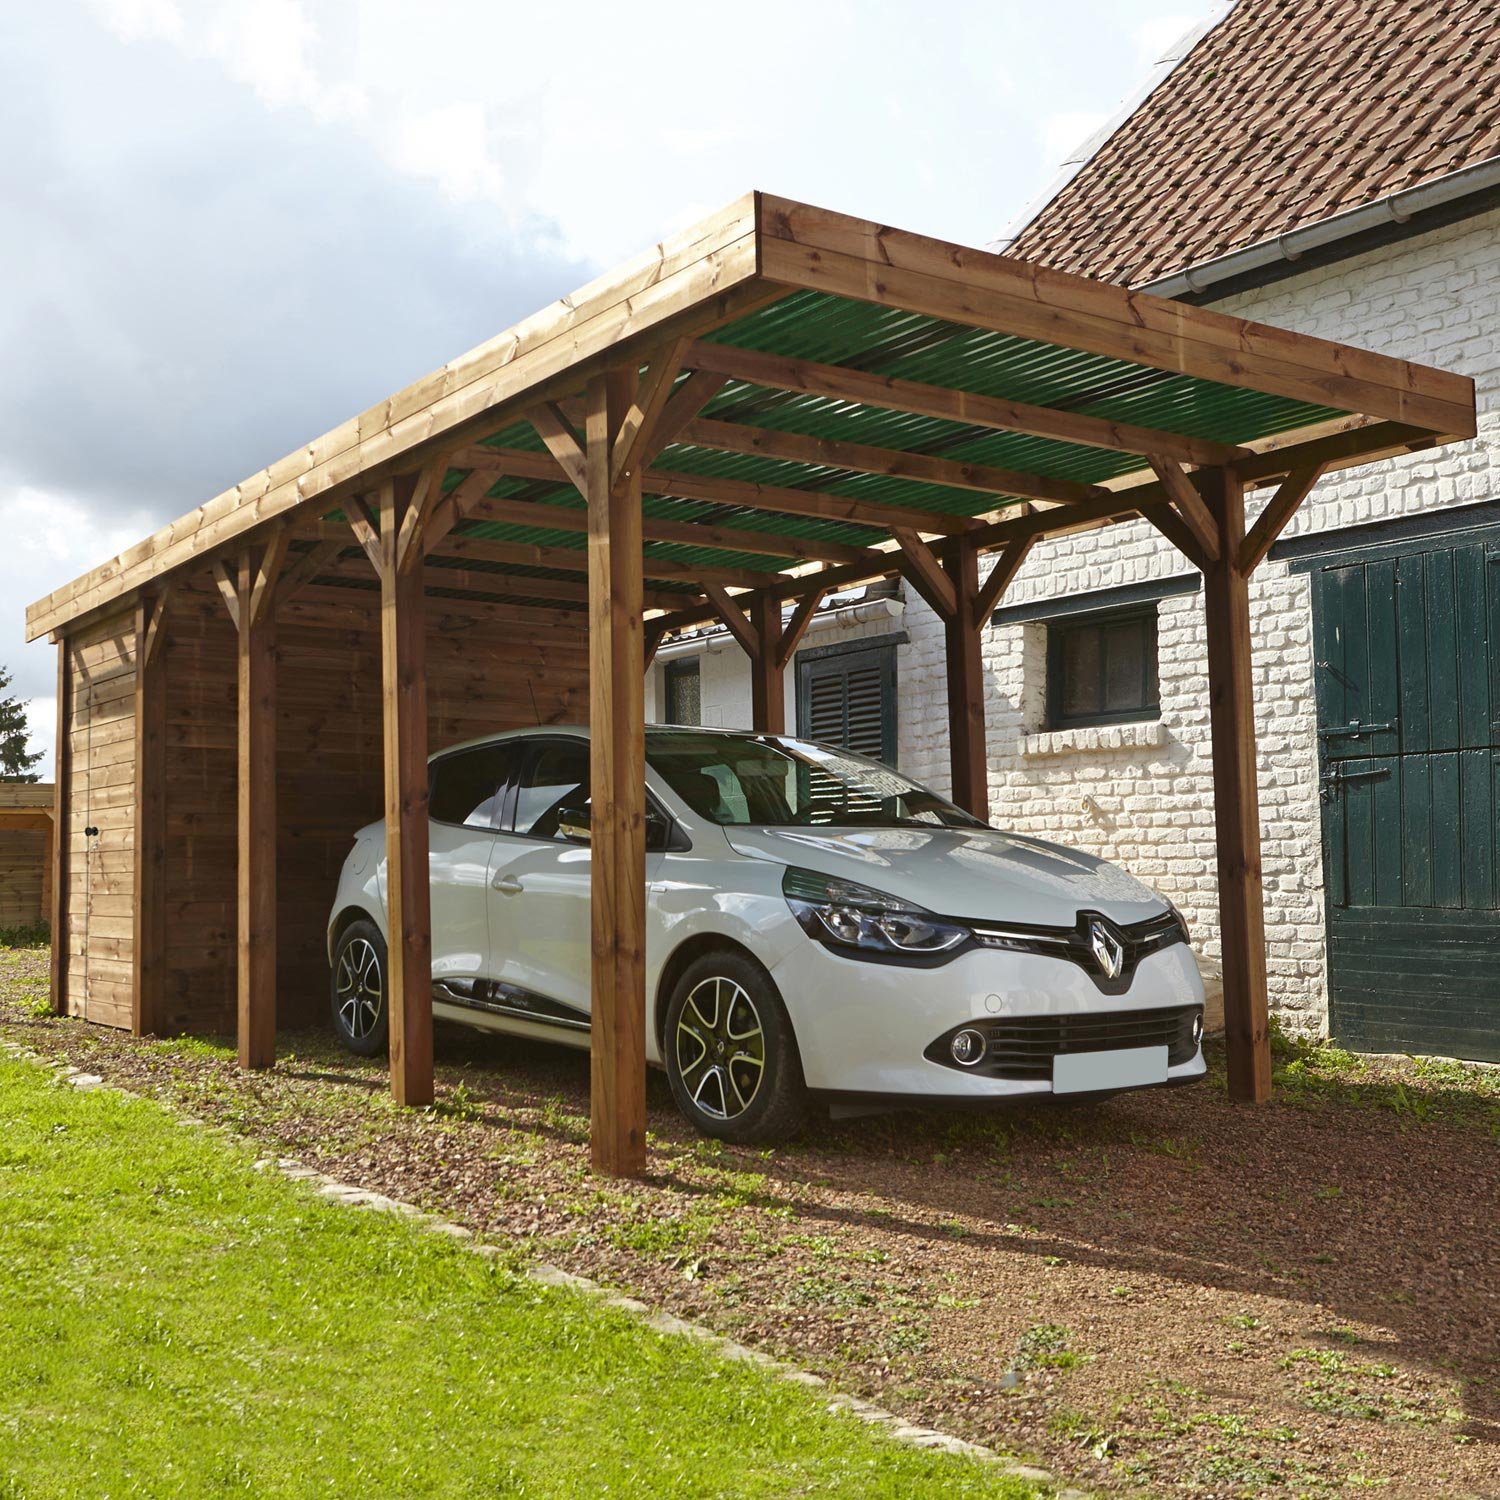 Garage en bois leroy merlin - Garage carport voiture ...